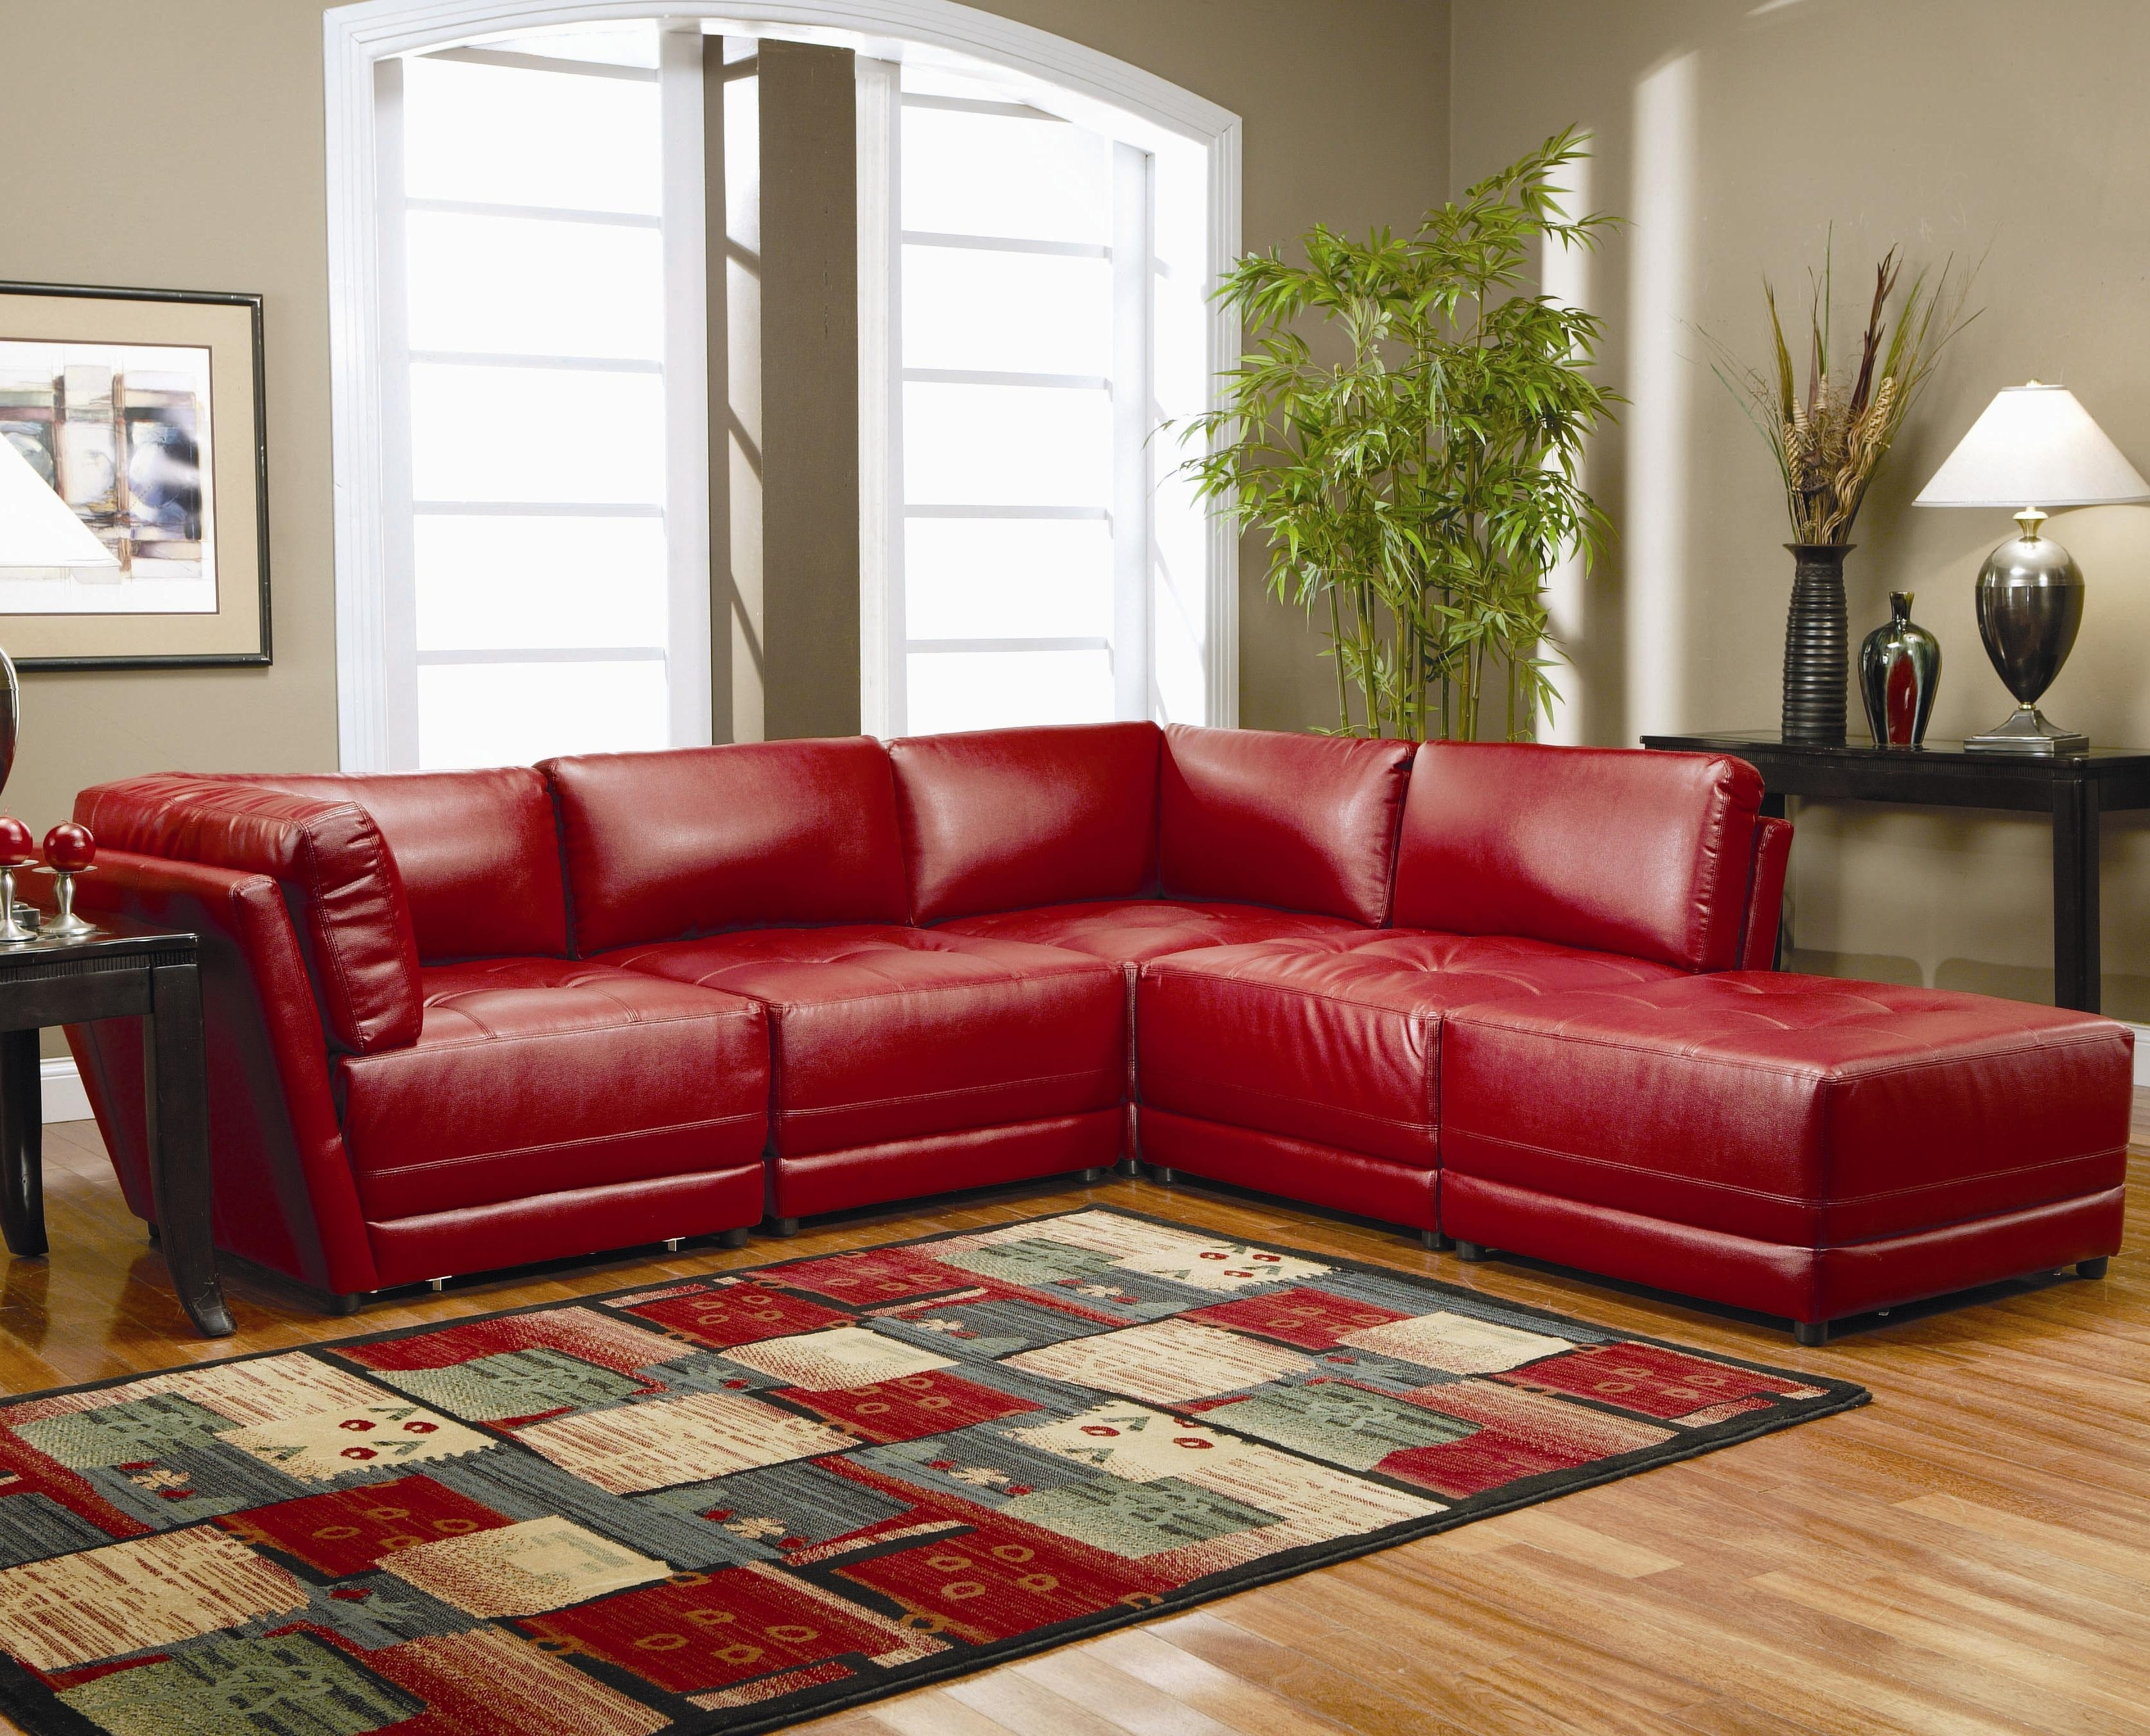 Small Red Leather Sectional Sofas Pertaining To Latest Warm Red Leather Sectional L Shaped Sofa Design Ideas For Living (View 4 of 20)